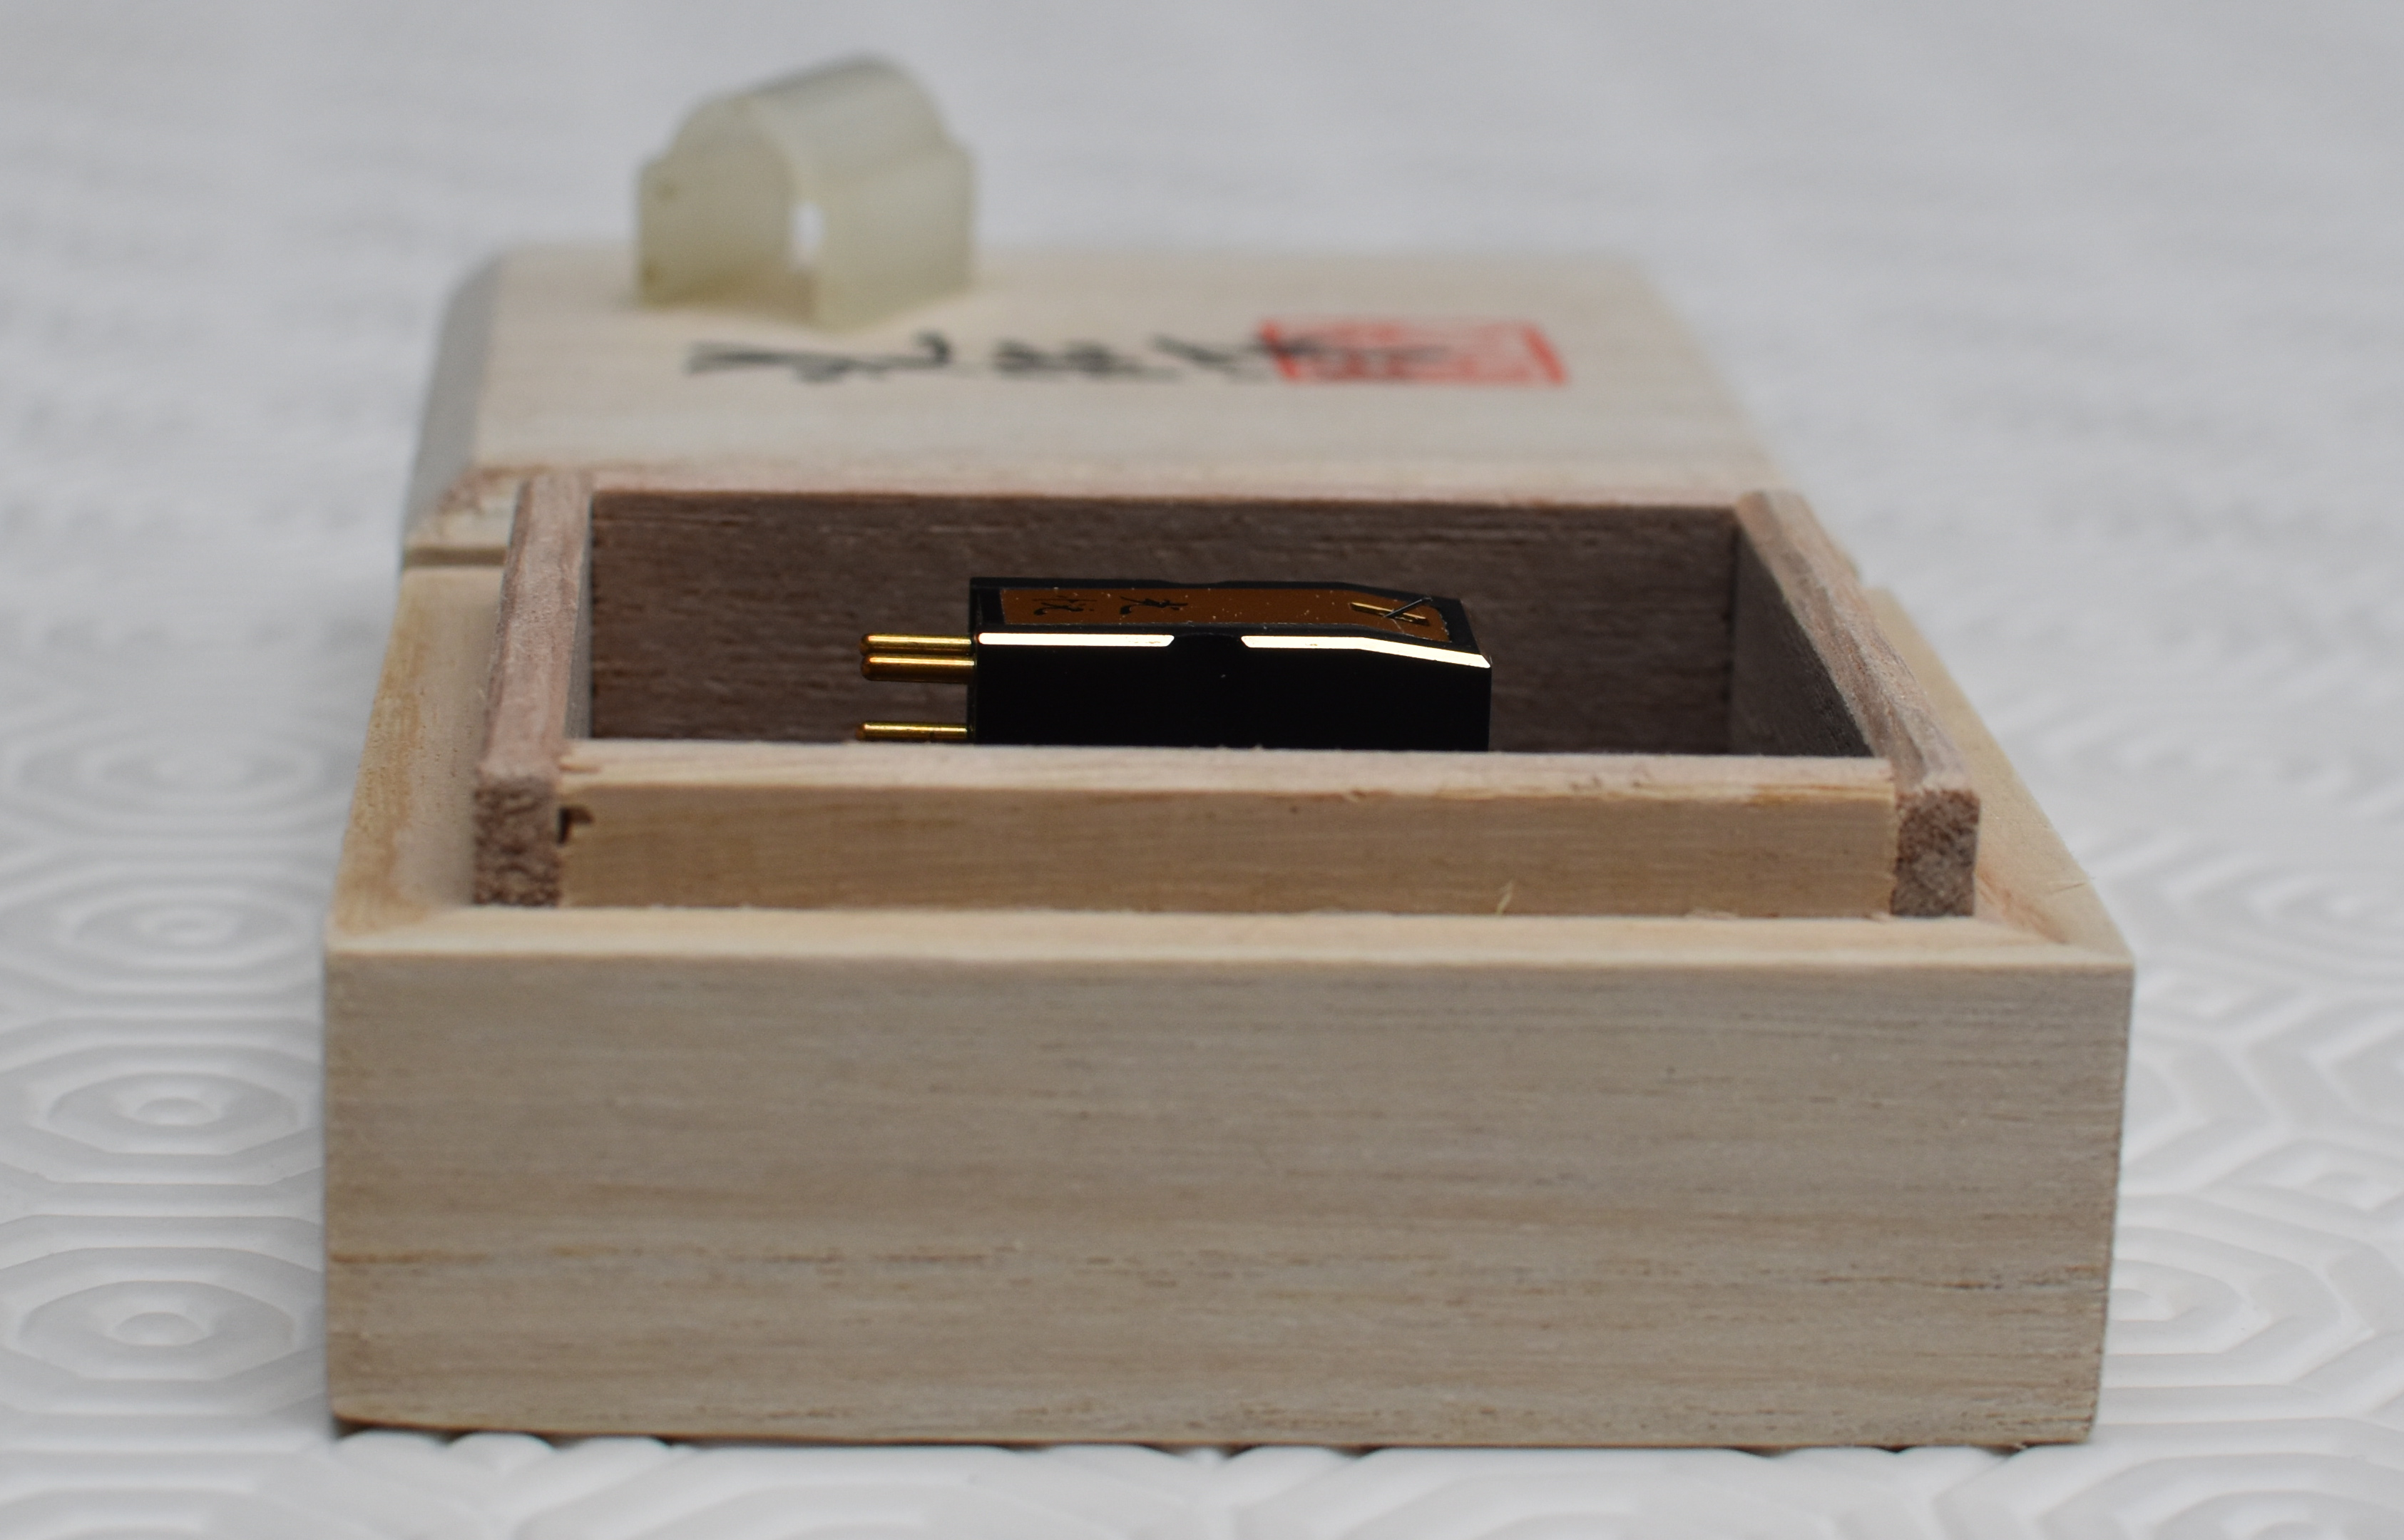 Analog-Vinyl Reviews: Koetsu Urushi Black Cartridge Reviewed